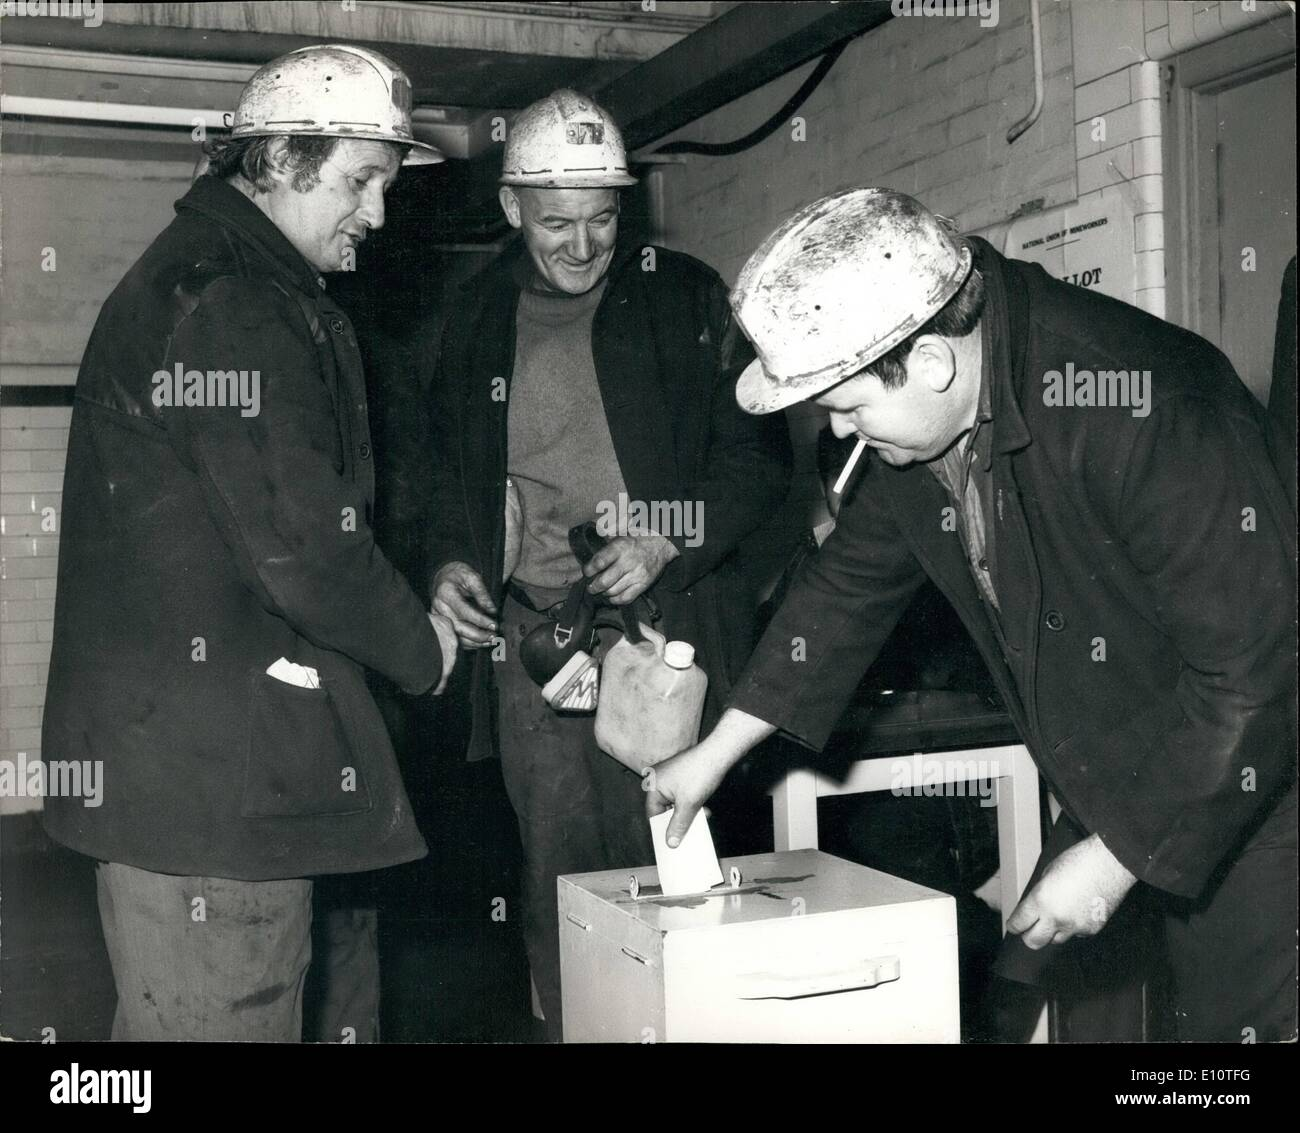 Feb. 02, 1974 - Miners vote in strike ballot. Miners at the Snowdown Colliery in Kent yesterday cast their votes - Stock Image